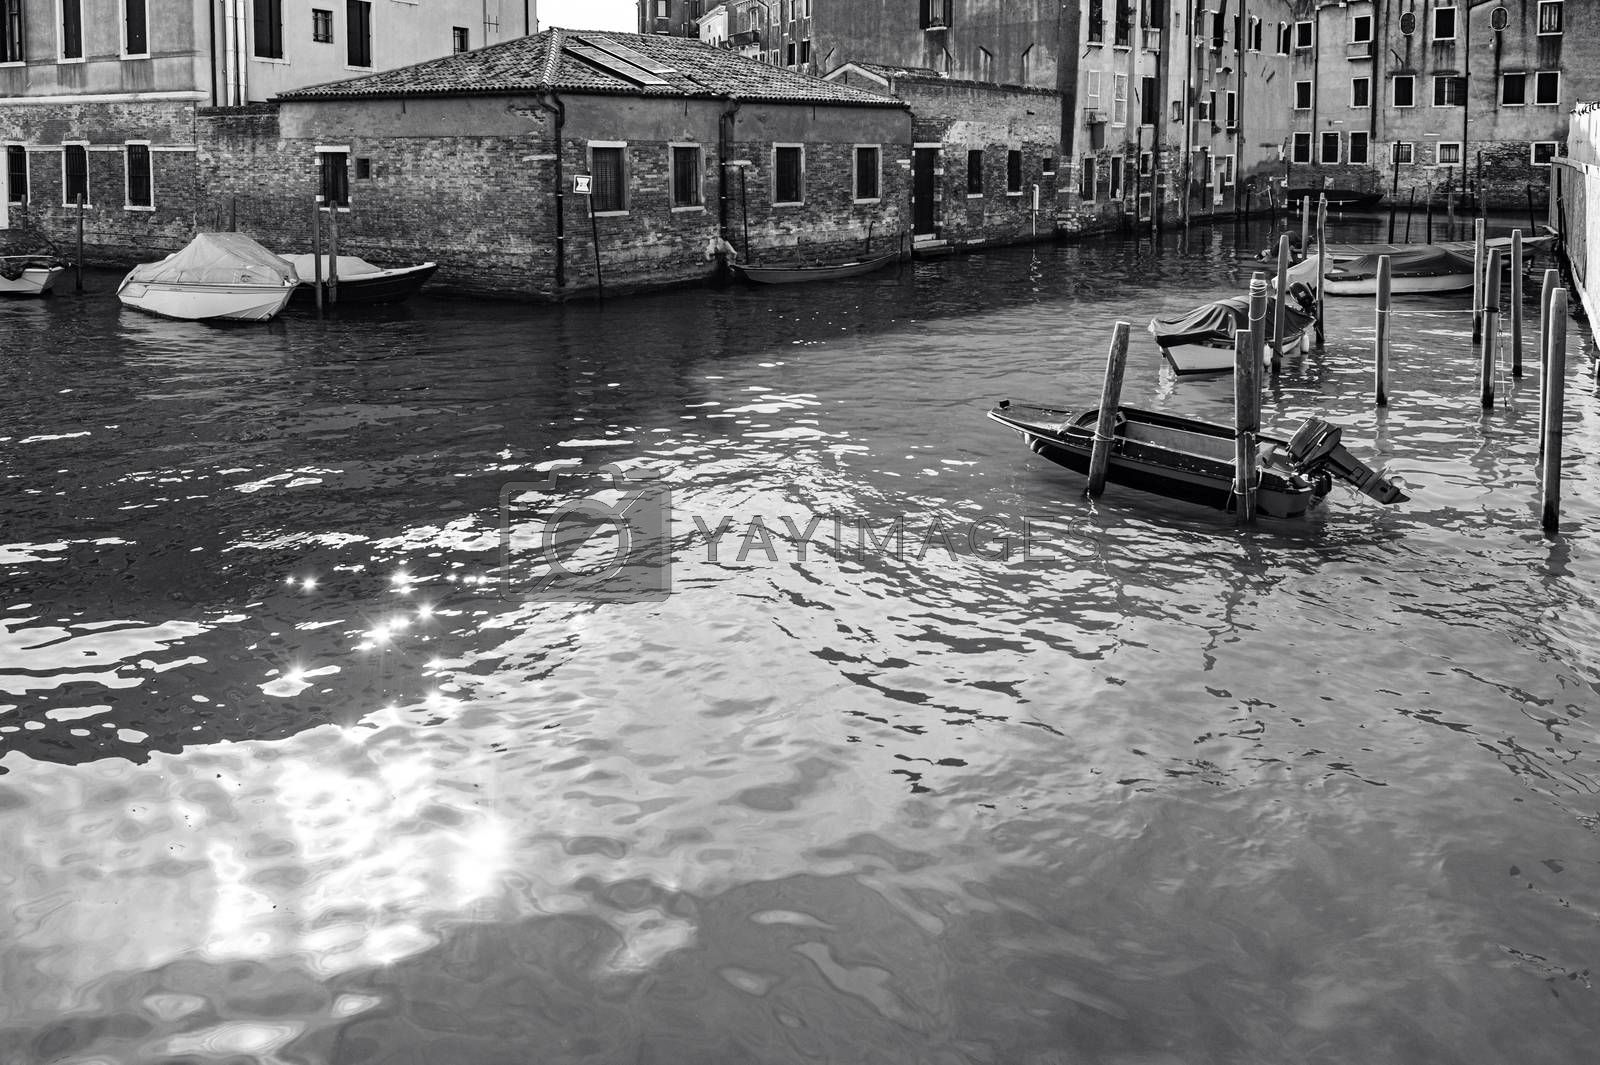 Deserted Venice in black and white. Museum City is situated across a group of islands that are separated by canals and linked by empty bridges.